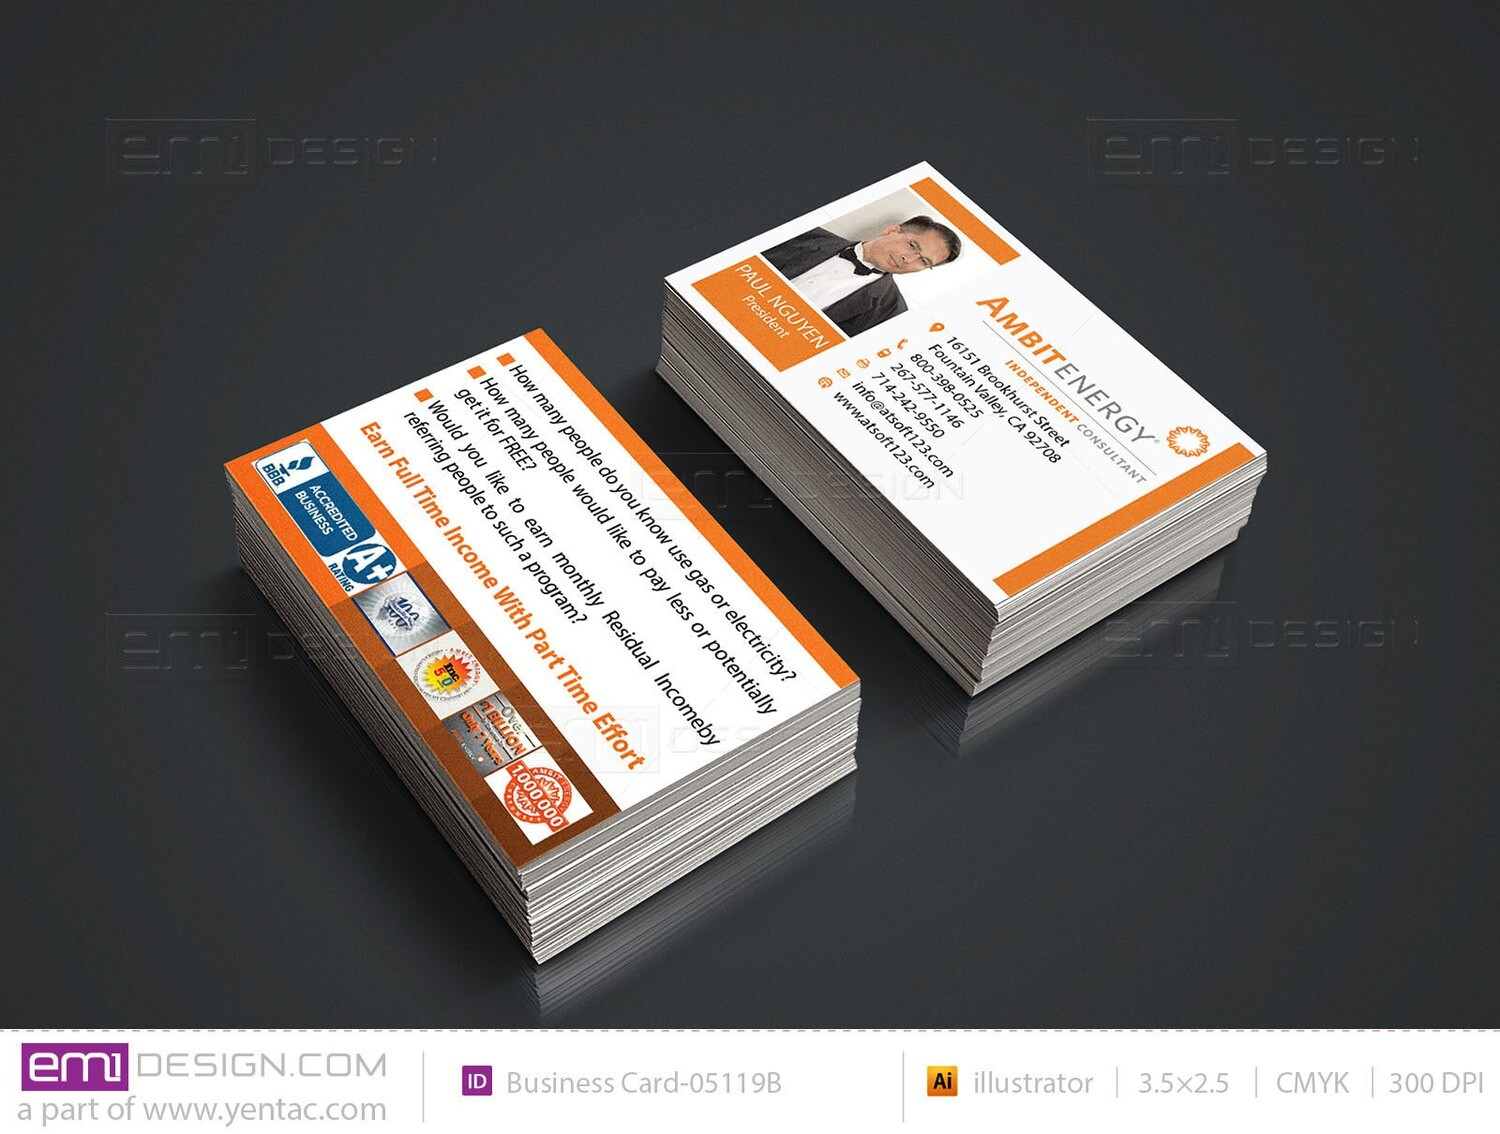 Business Card - Template BusCard-05119B